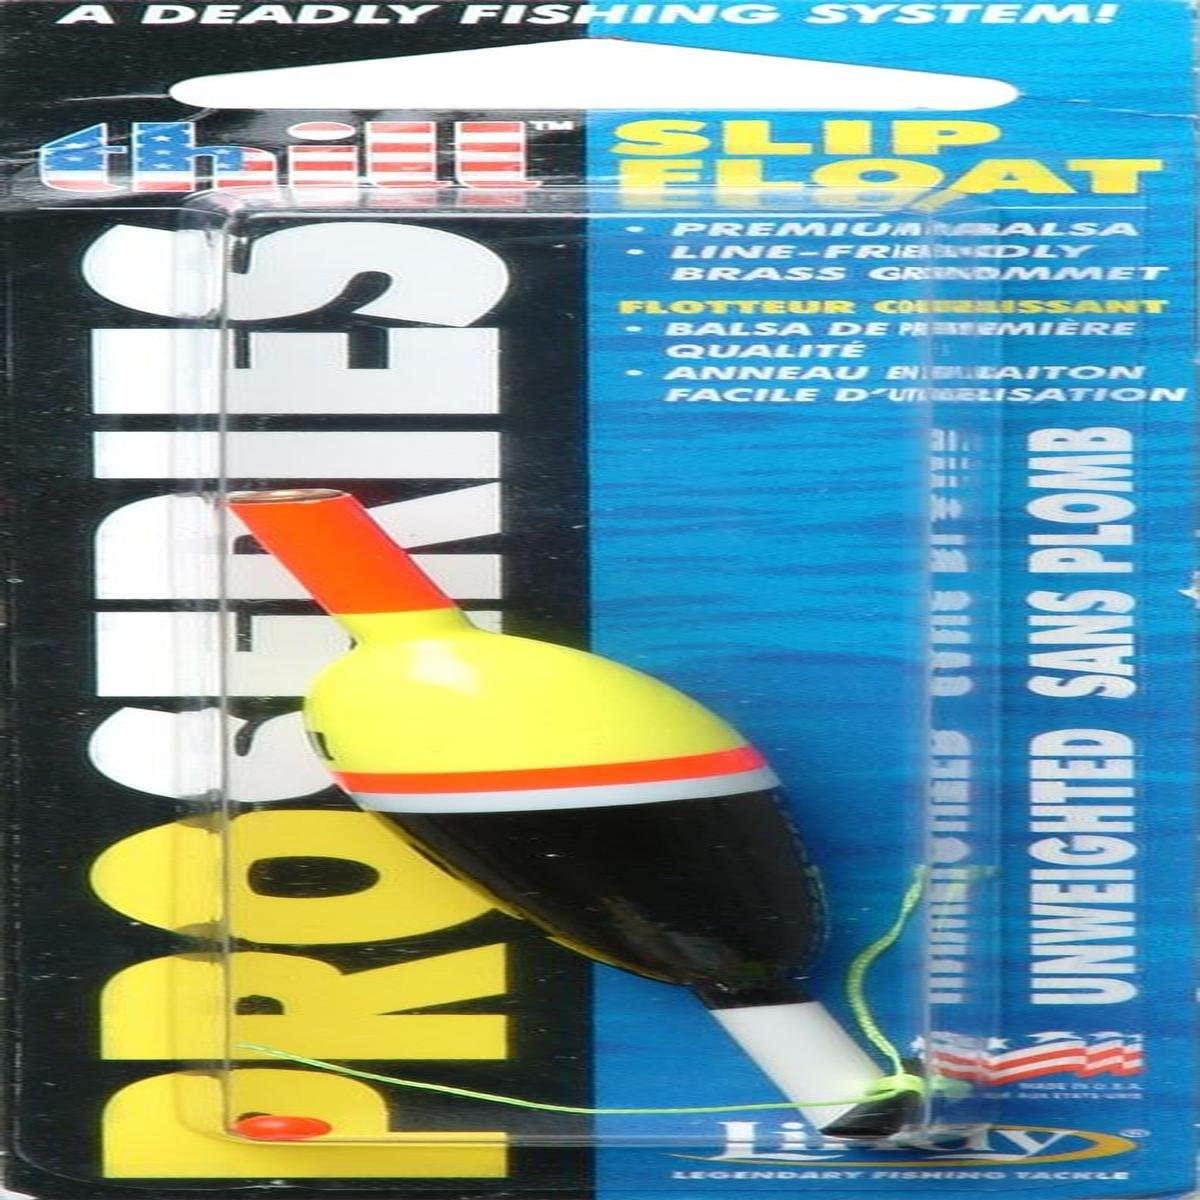 3//4 in Unweighted PS115 Thill Pro Series Slip Floats Large NEW